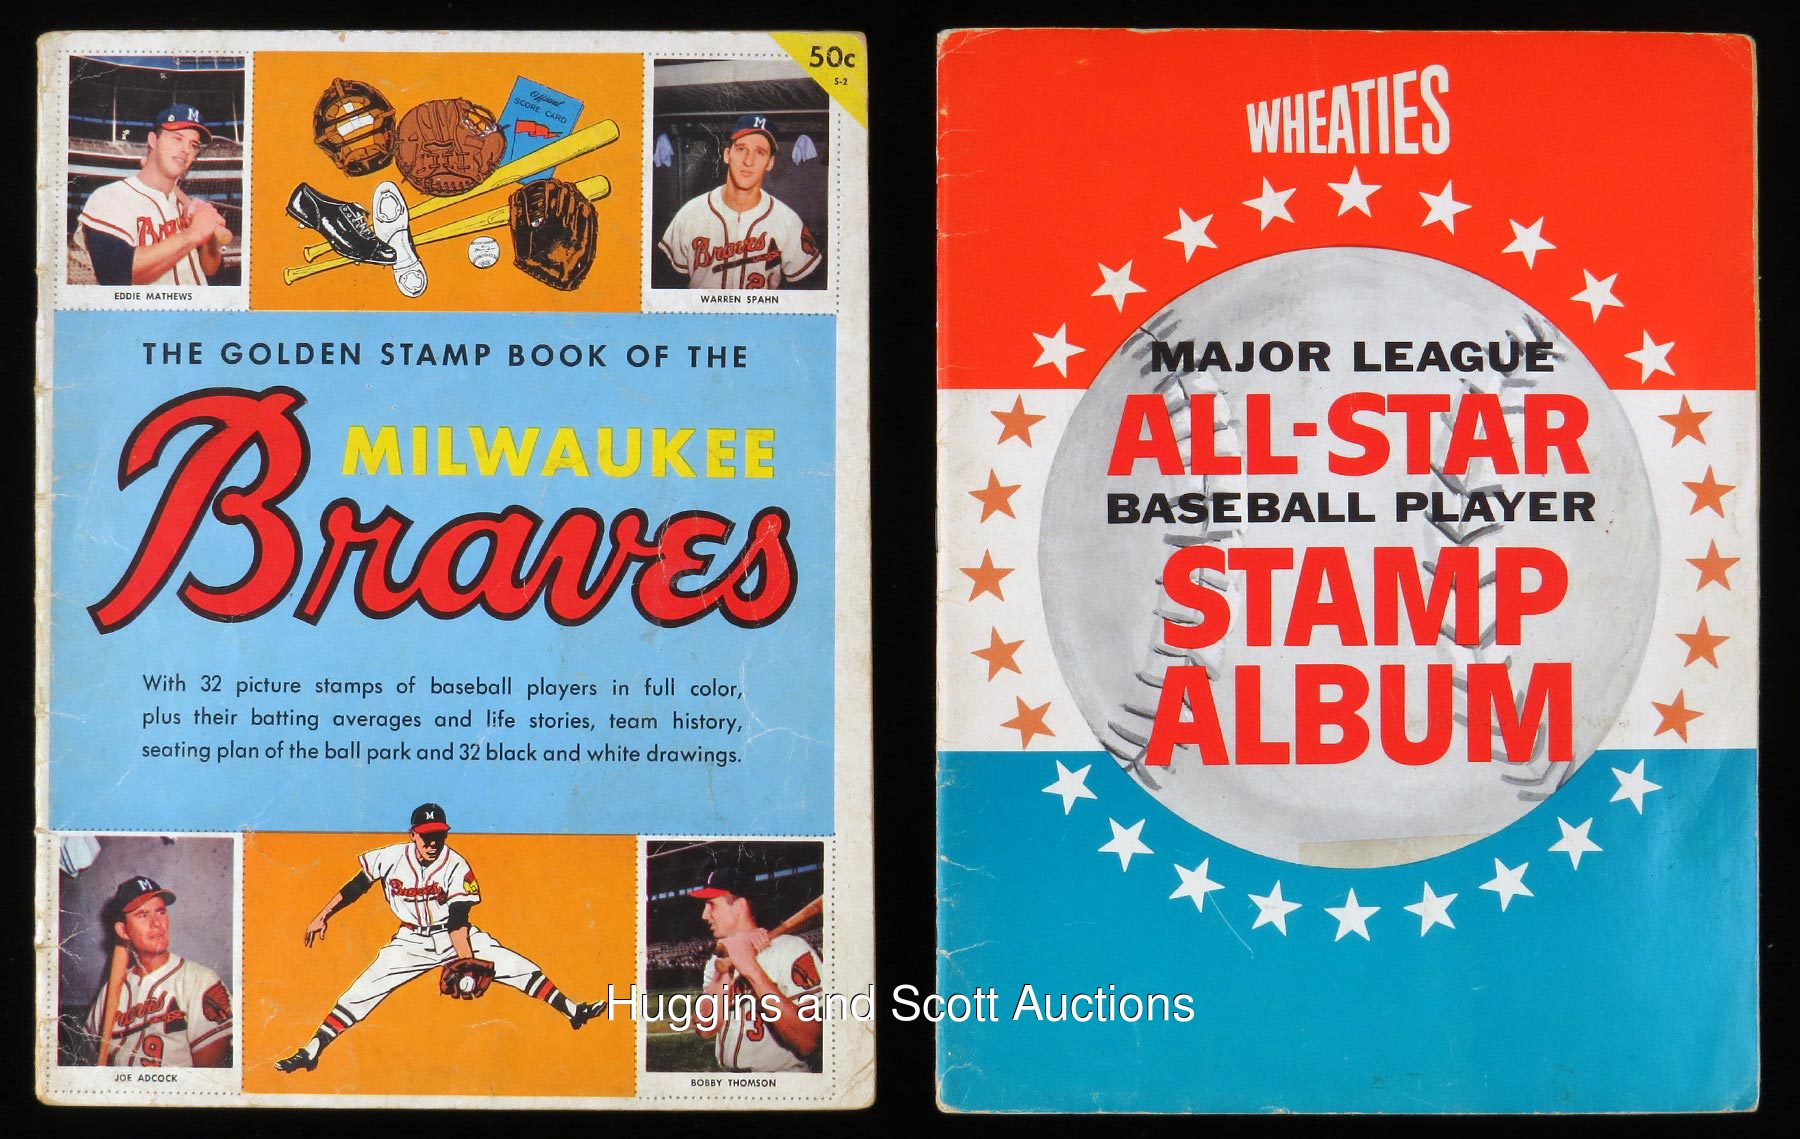 Completed Baseball Stamp Album Lot of (2) with 1955 Golden